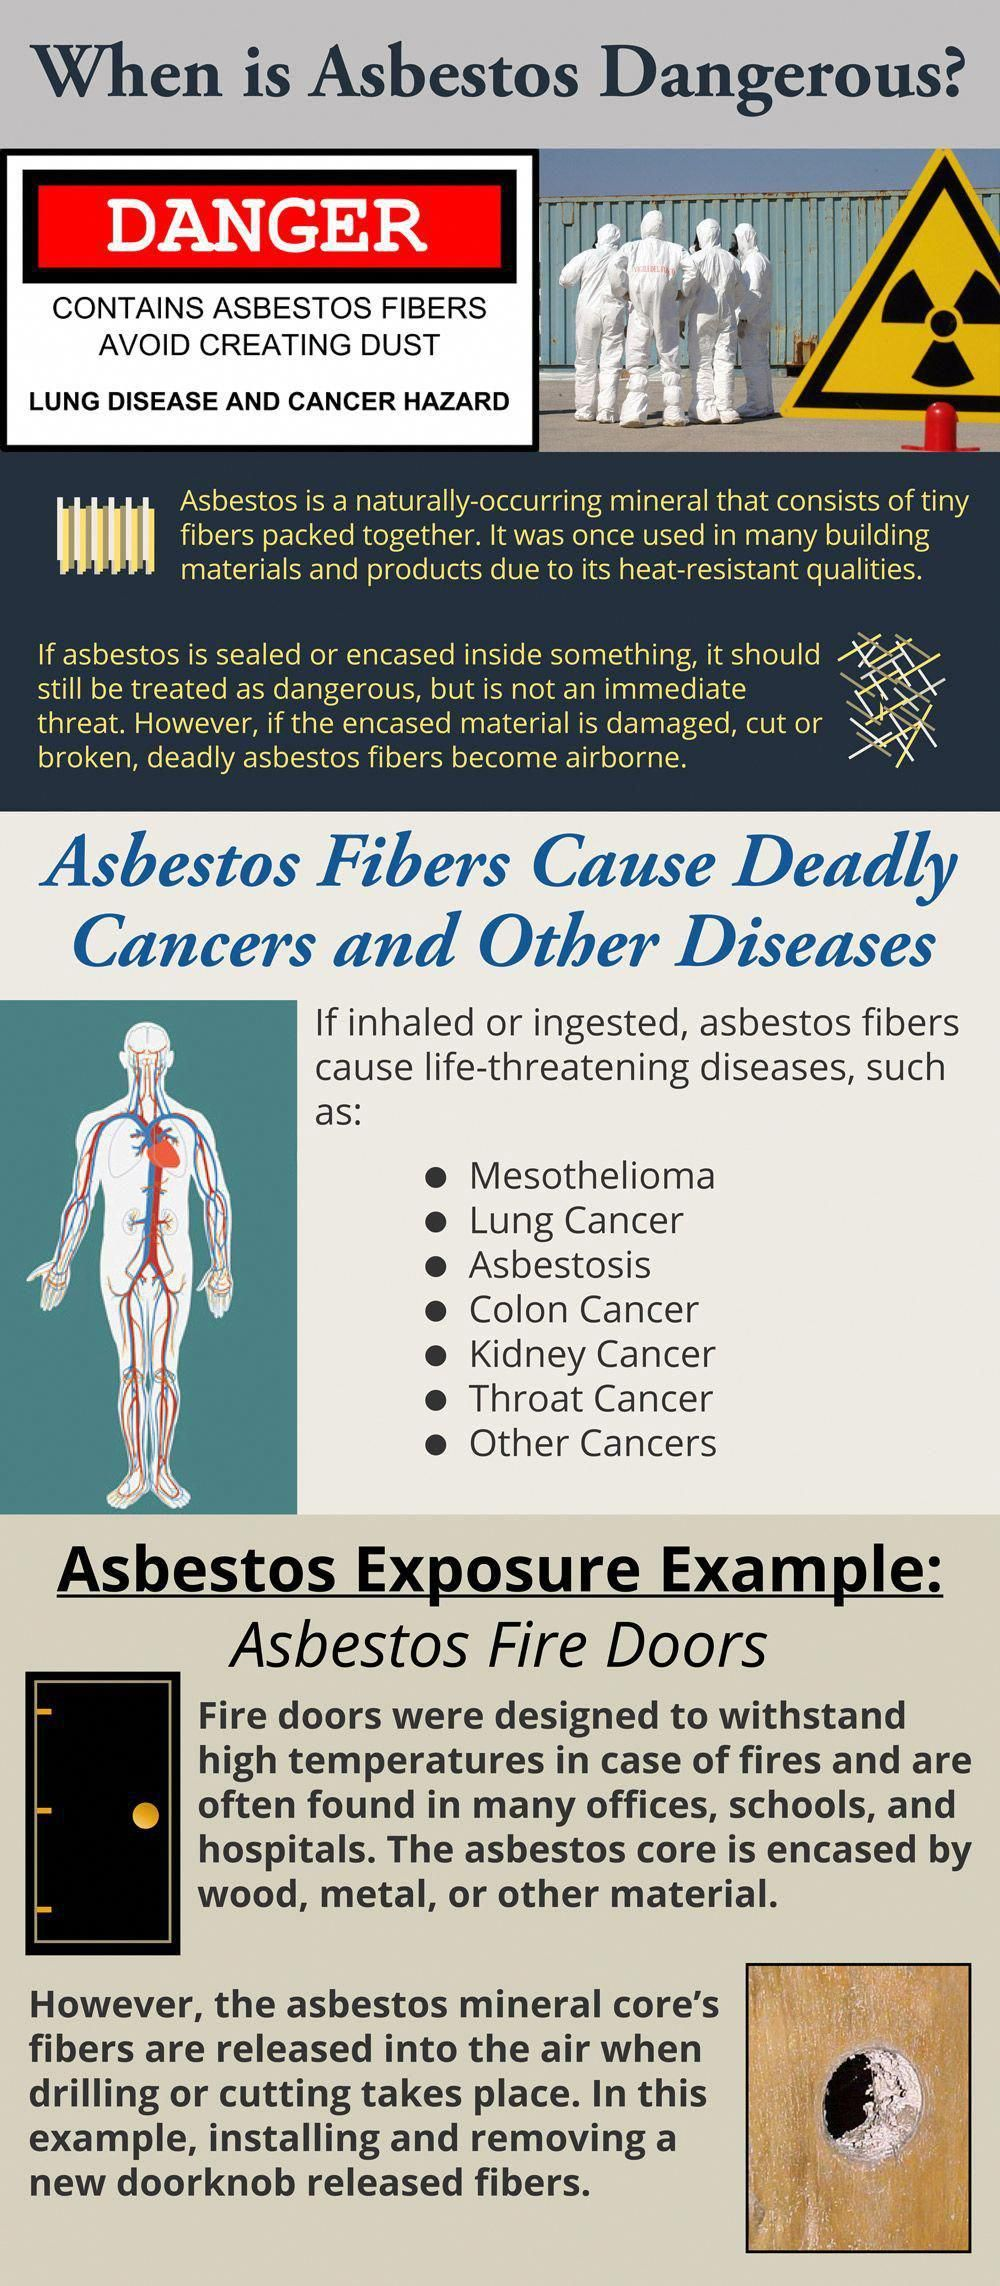 Are There Any New Treatments For Mesothelioma